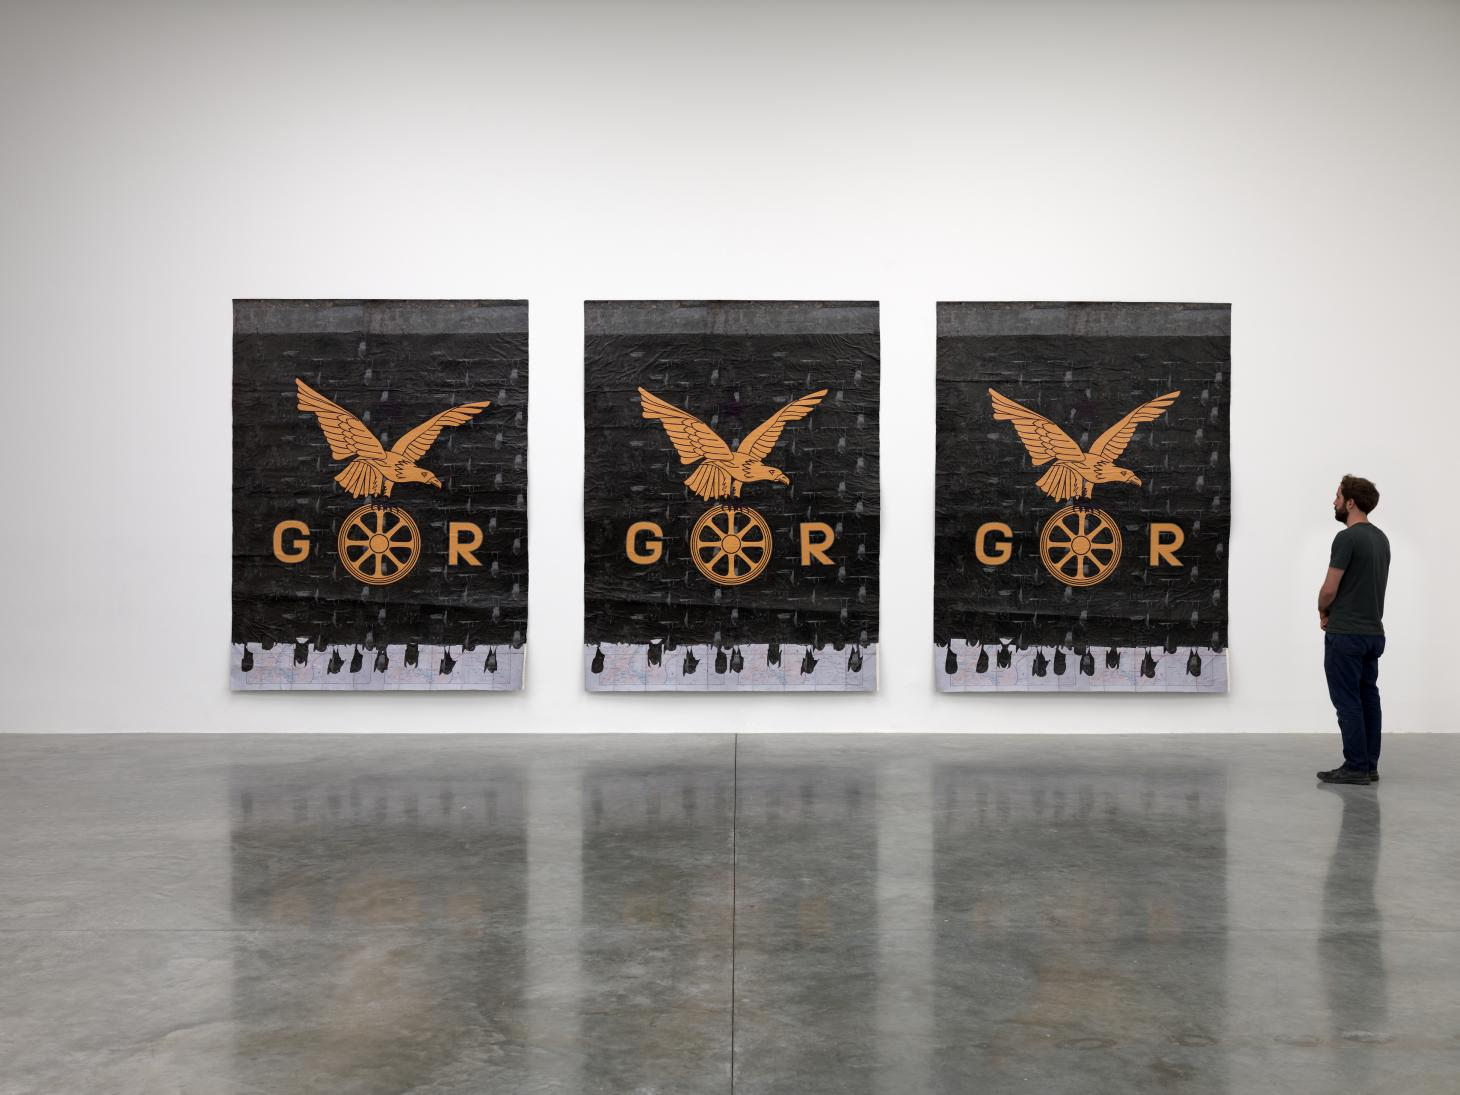 Black and orange artwork by Ibrahim Mahama, featuring bats, at White Cube gallery